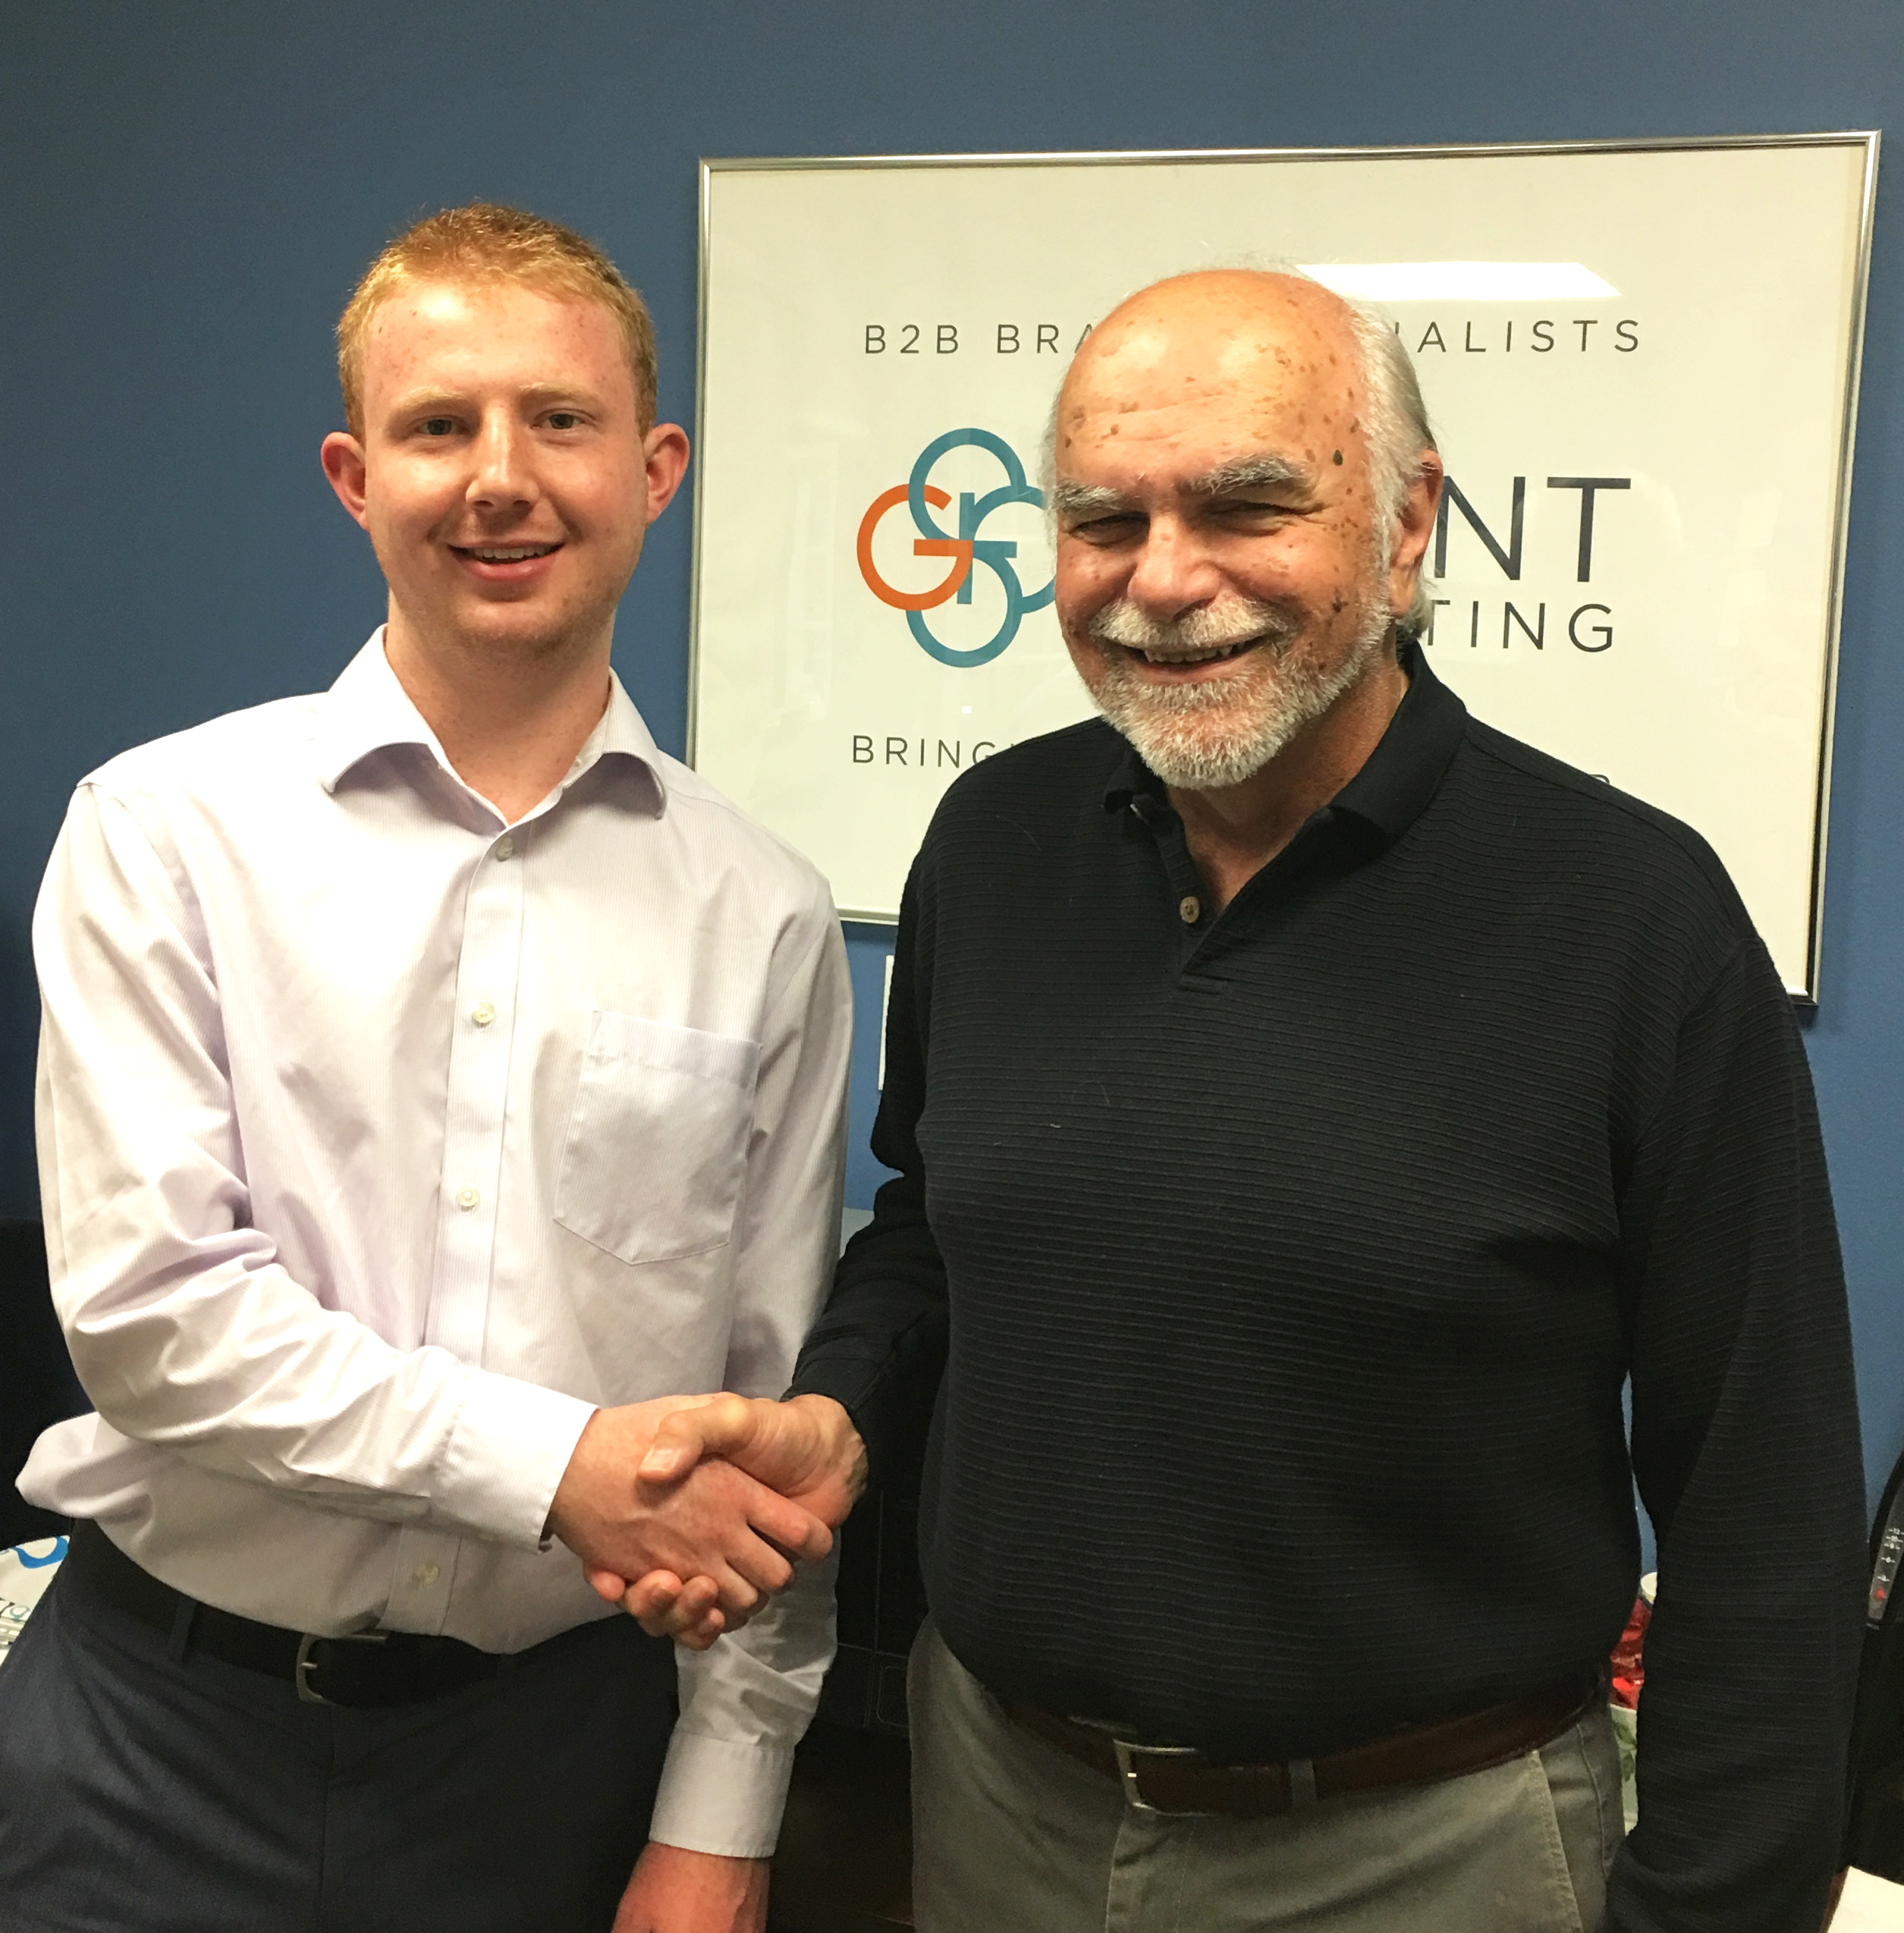 Bob welcomes Luke to Grant Marketing